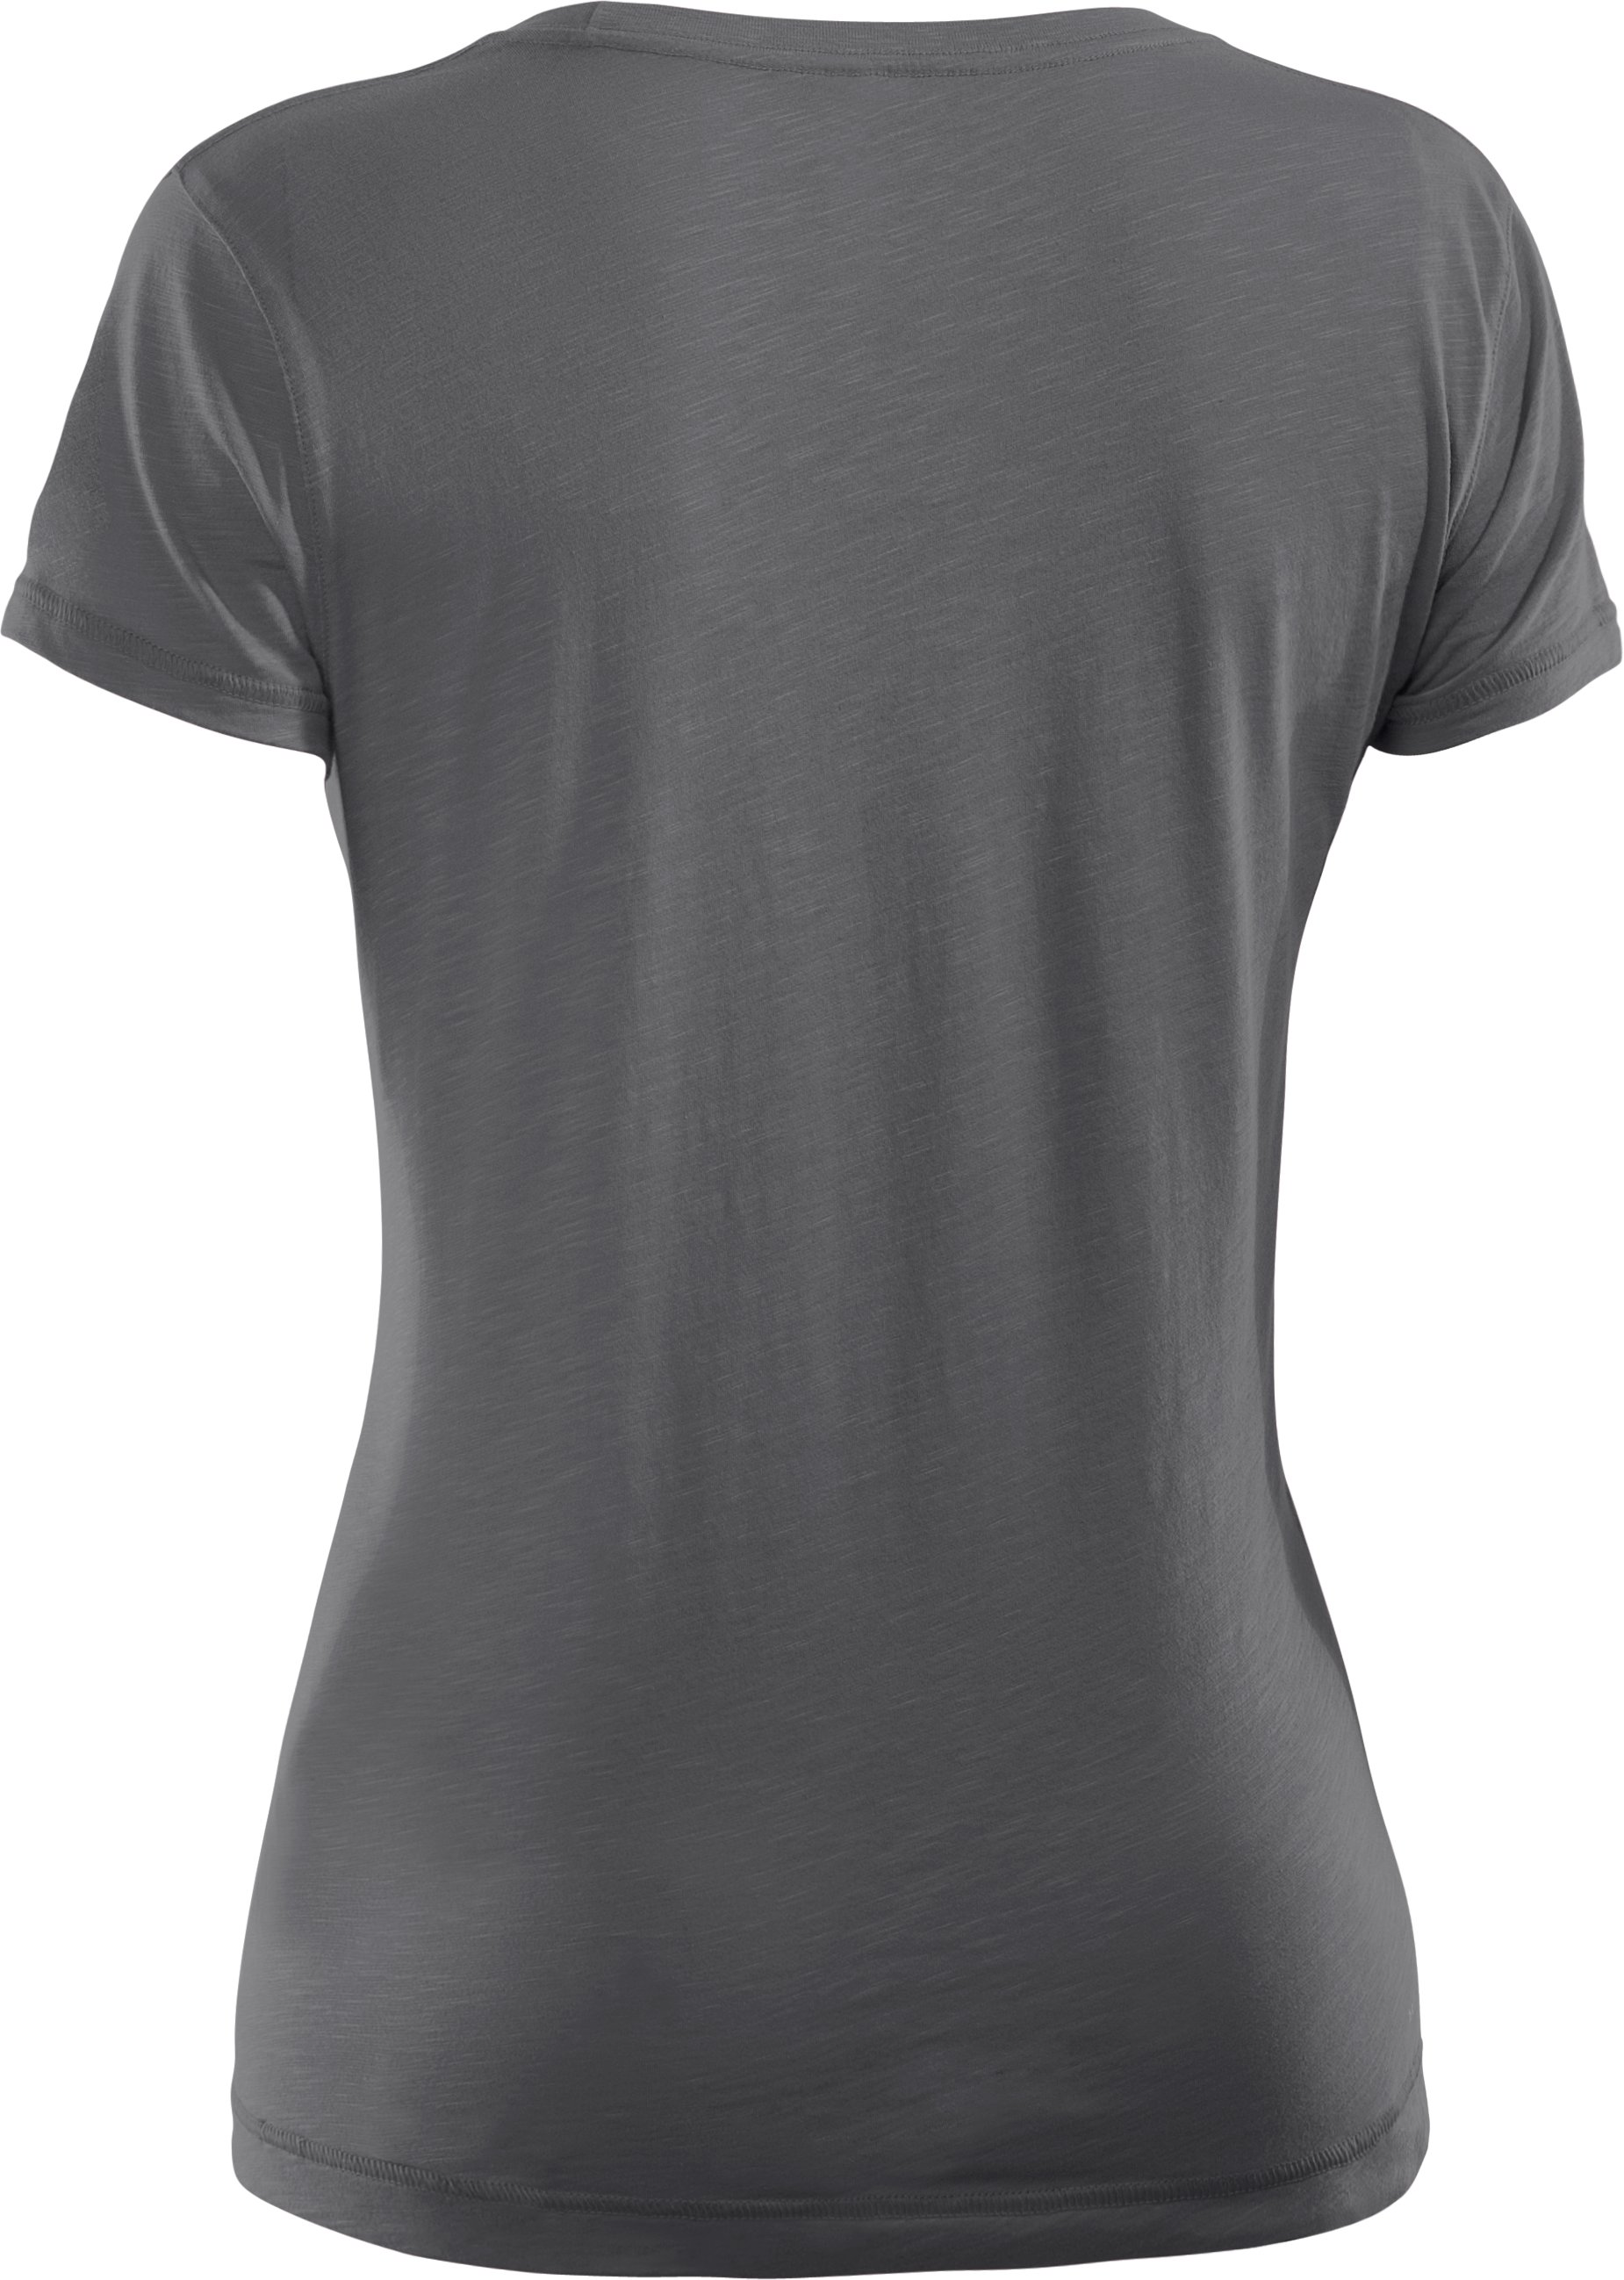 Women's Charged Cotton® Sassy Slub T-Shirt, Graphite